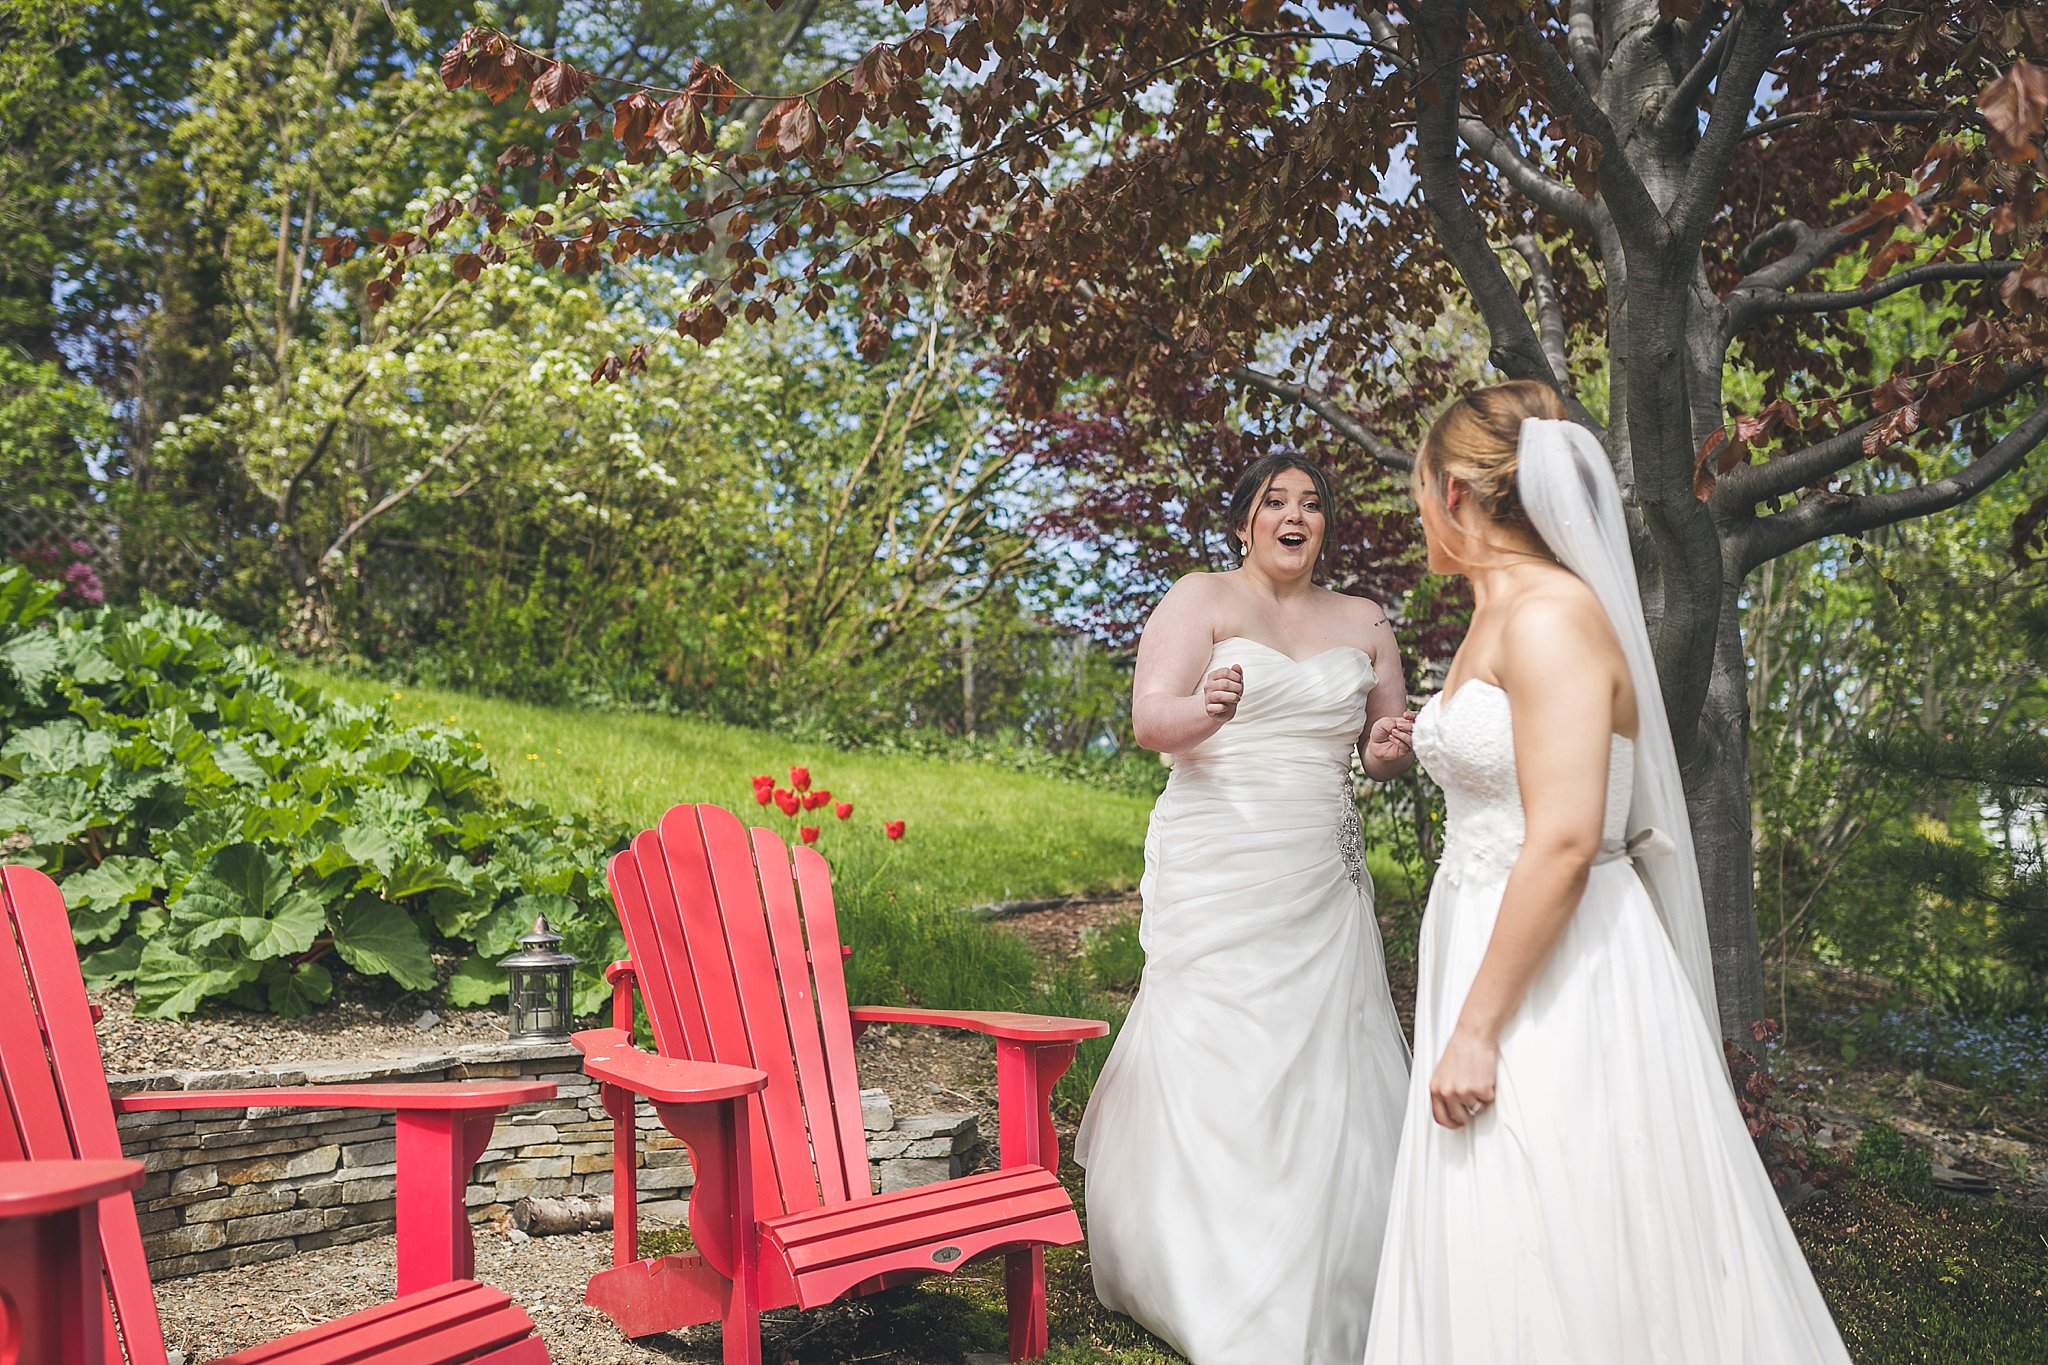 A couple reacts to seeing each other for the first time during their St. John's, Newfoundland wedding